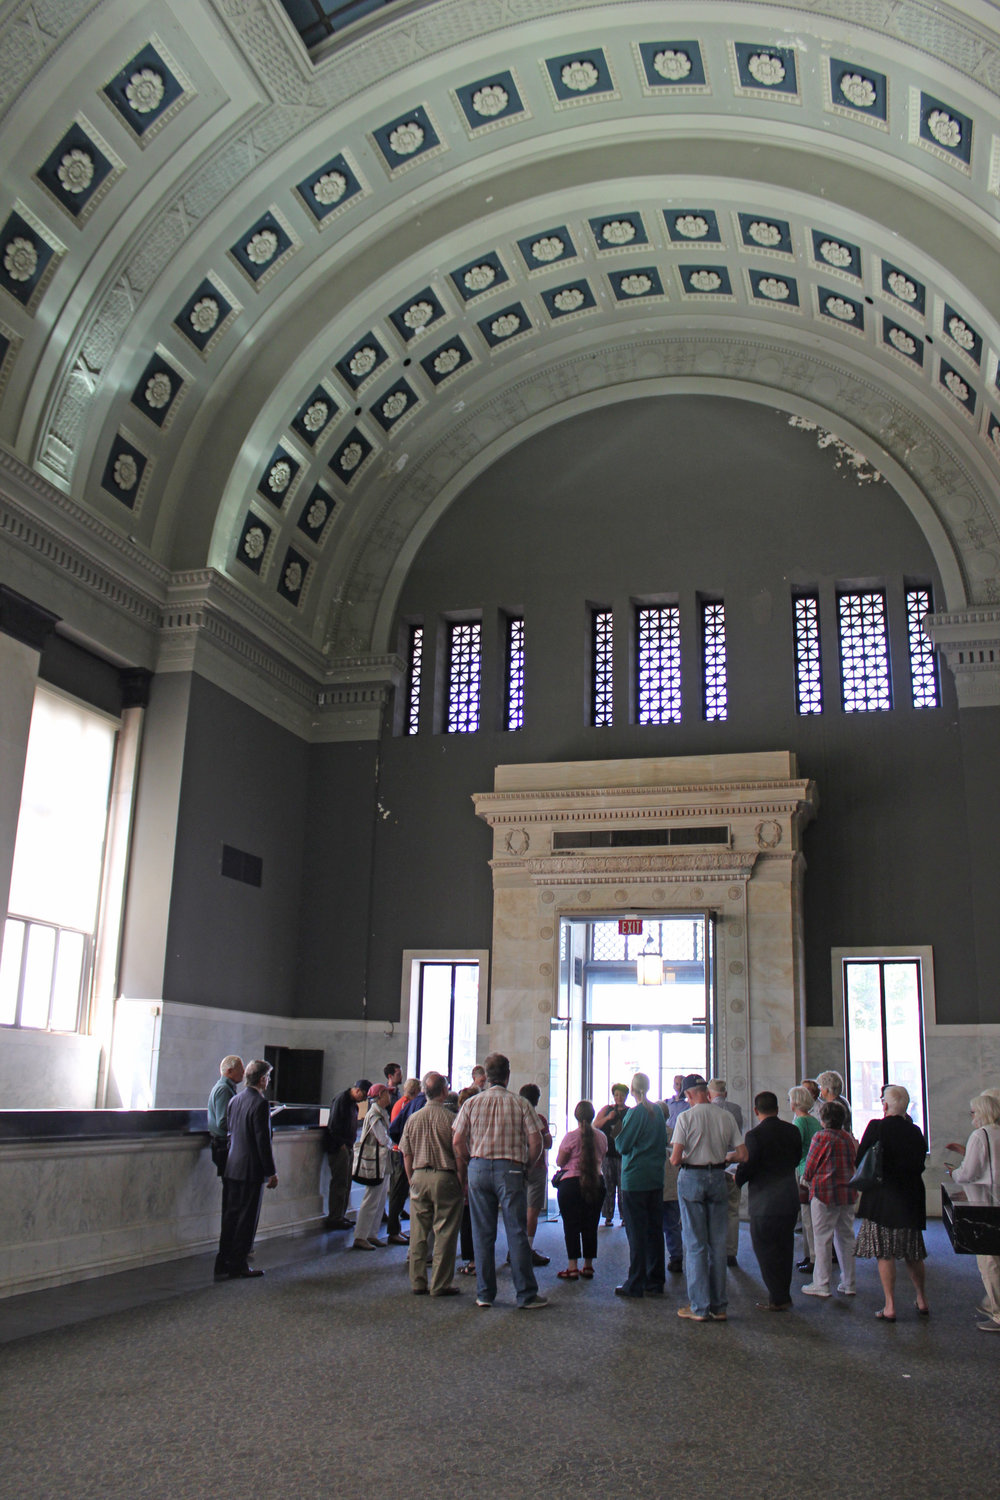 New Haven Preservation Trust hosts a tour of the former Connecticut Savings Bank building which was completed in 1906 to designs by architects Gordon, Tracy, and Swartout of New York.